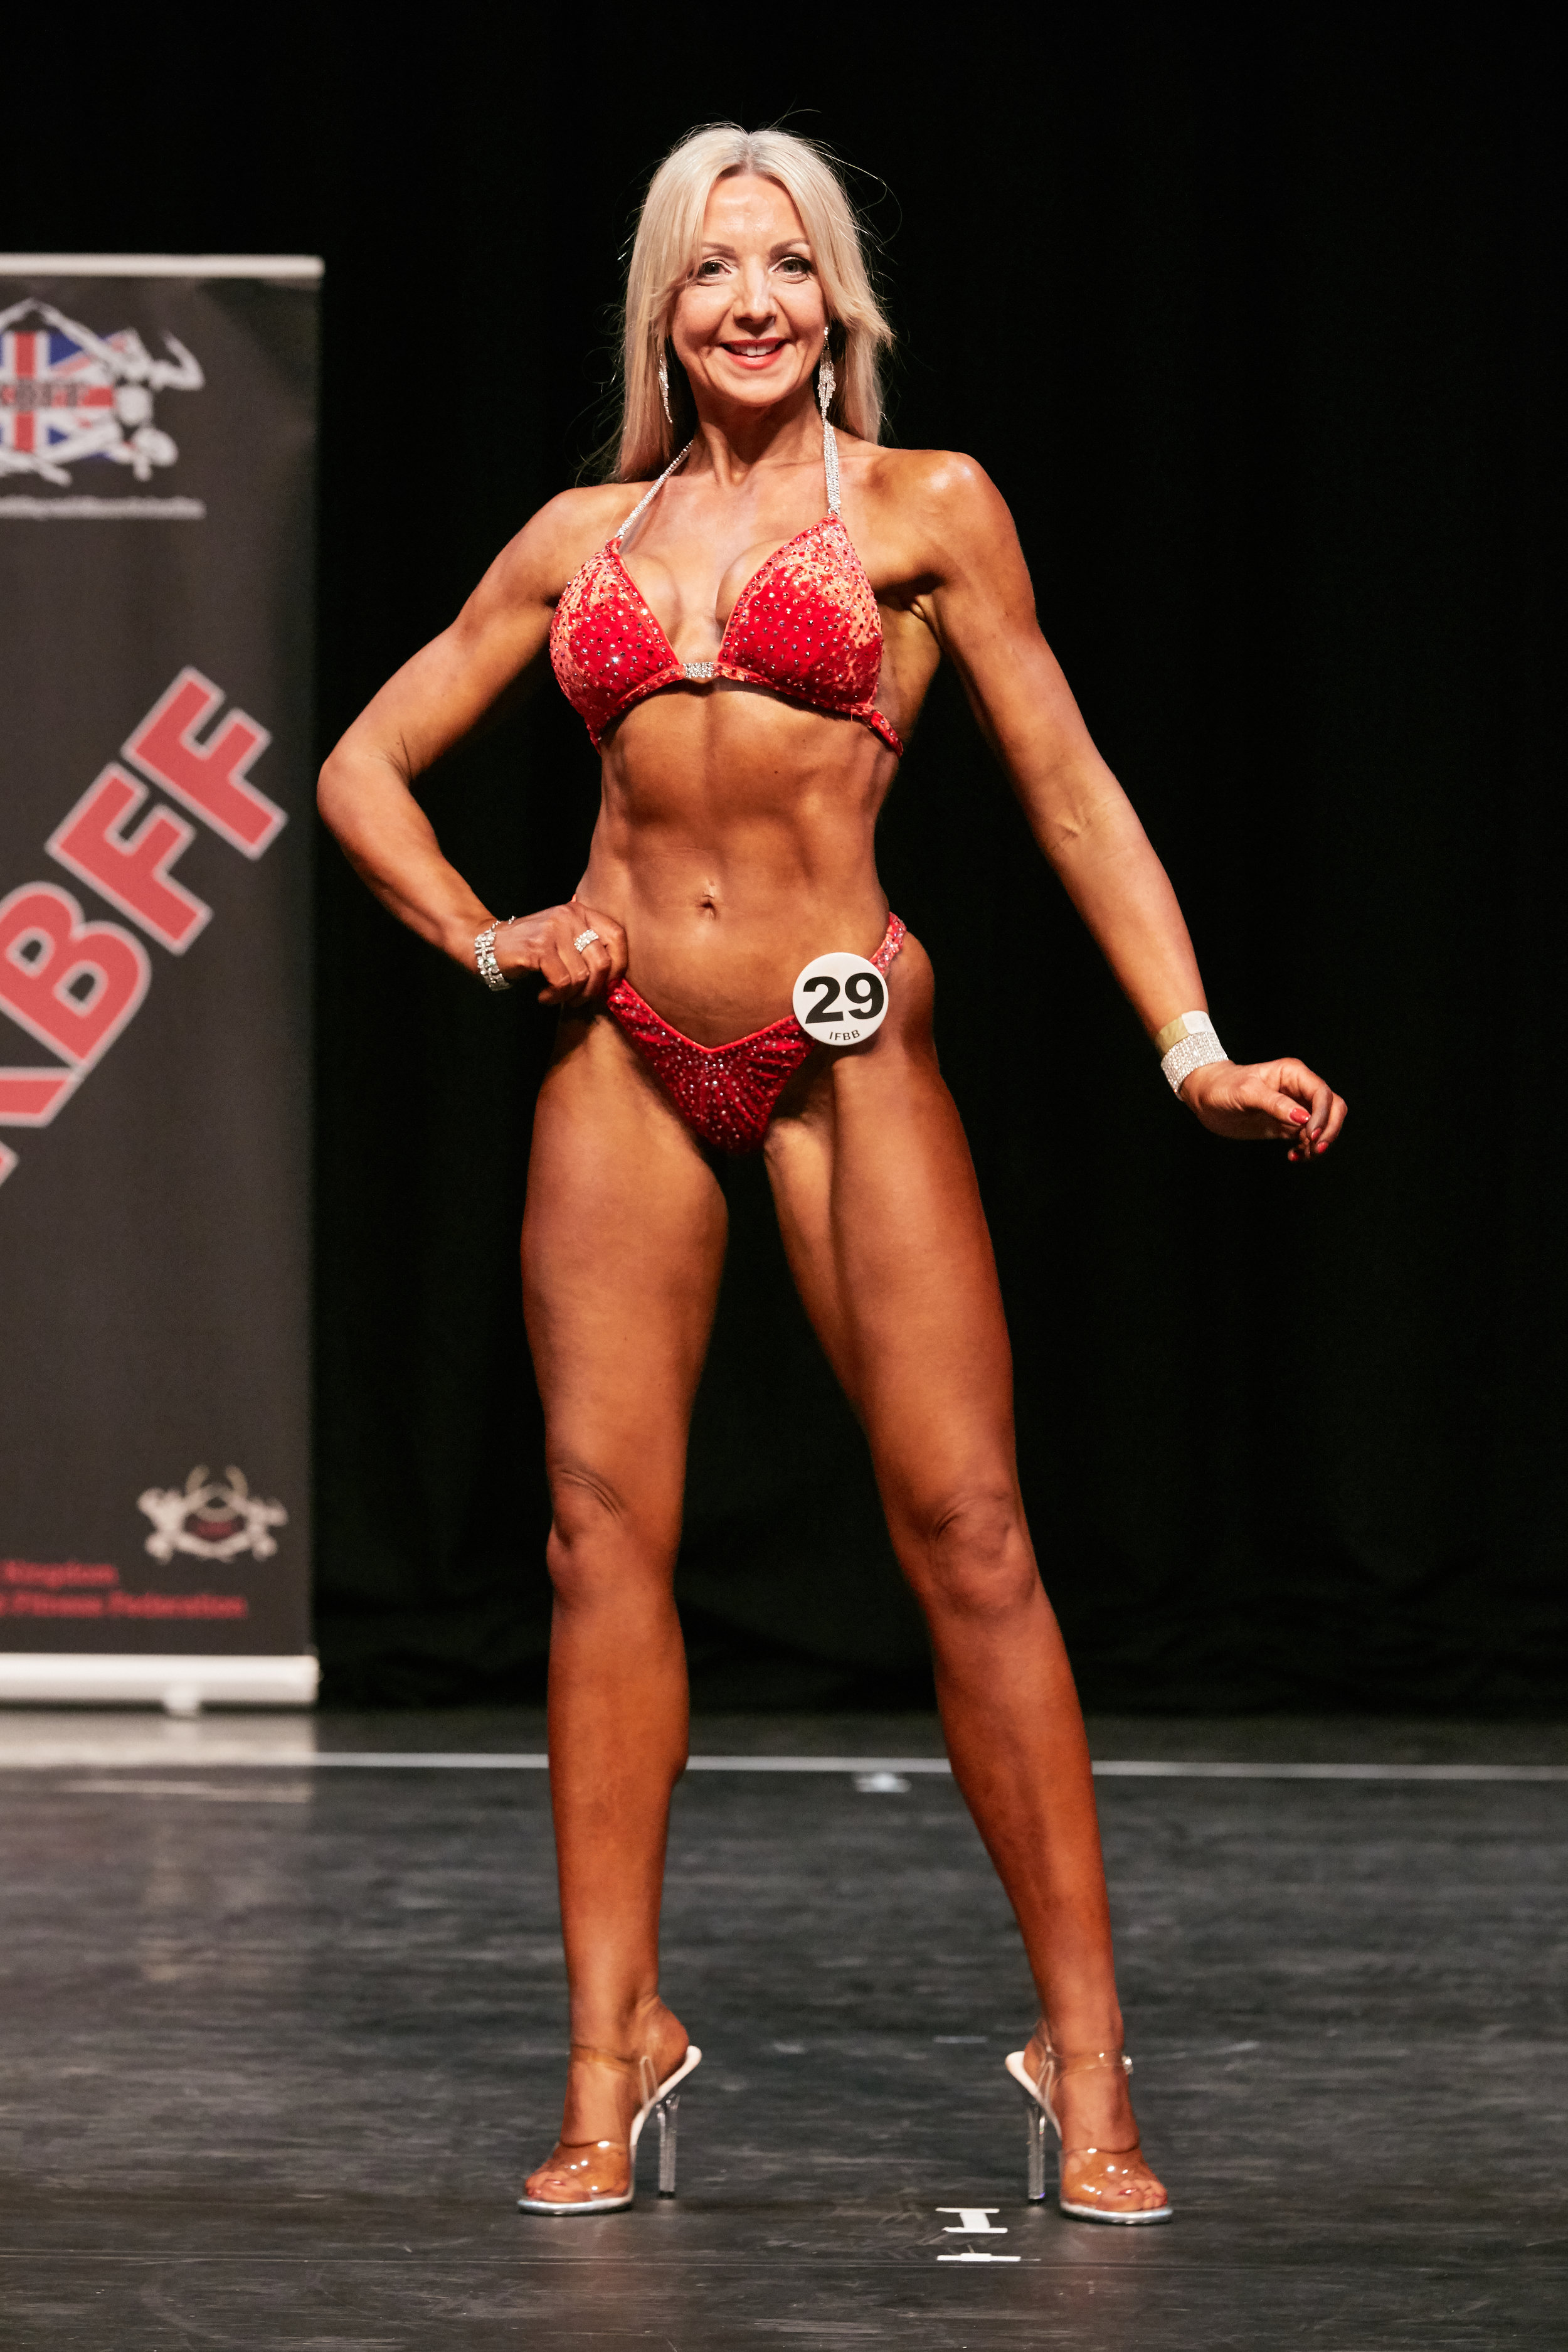 Clare on stage at the UK Nationals. PHOTO by Christopher Bailey.